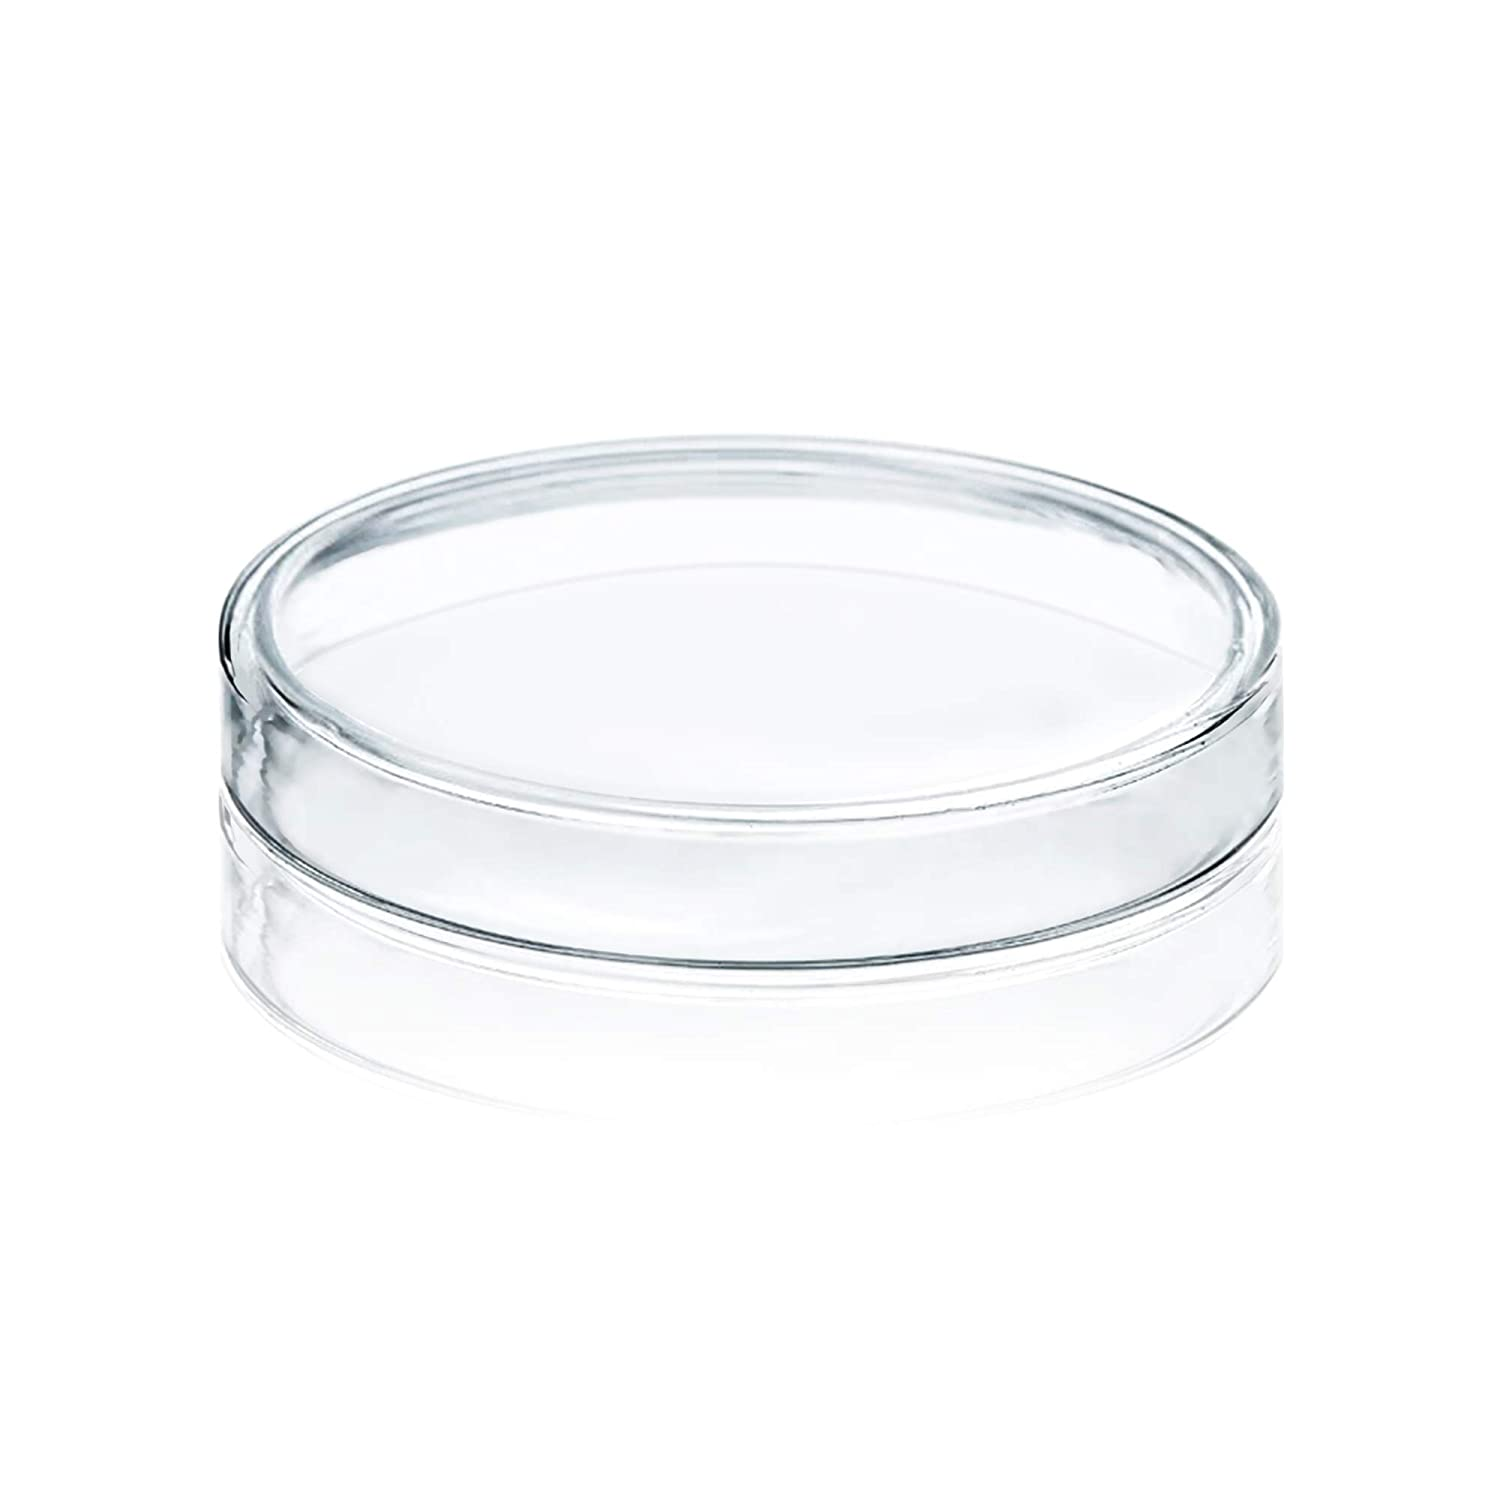 Huanyu 90mm High Borosilicate Glass Petri Dishes Bacterial Culture Dishes a Pack of 5PCS